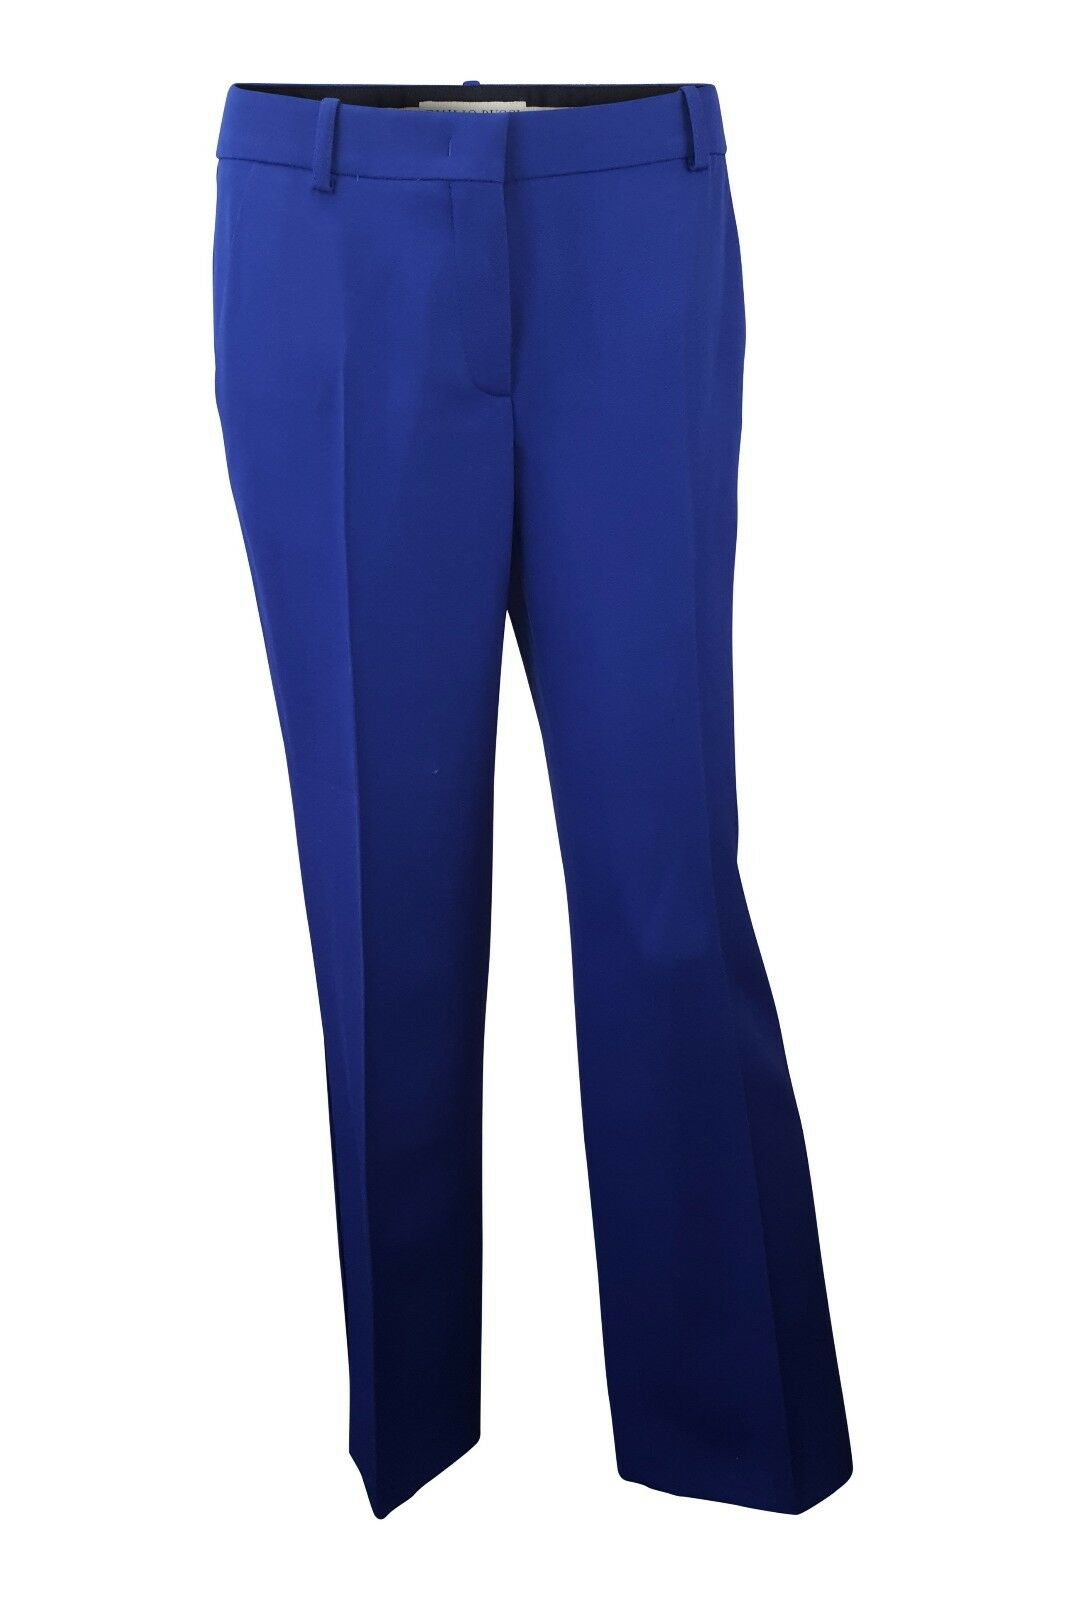 EMILIO PUCCI WOOL BLEND ELECTRIC blueE STRAIGHT LEG TROUSERS (44)